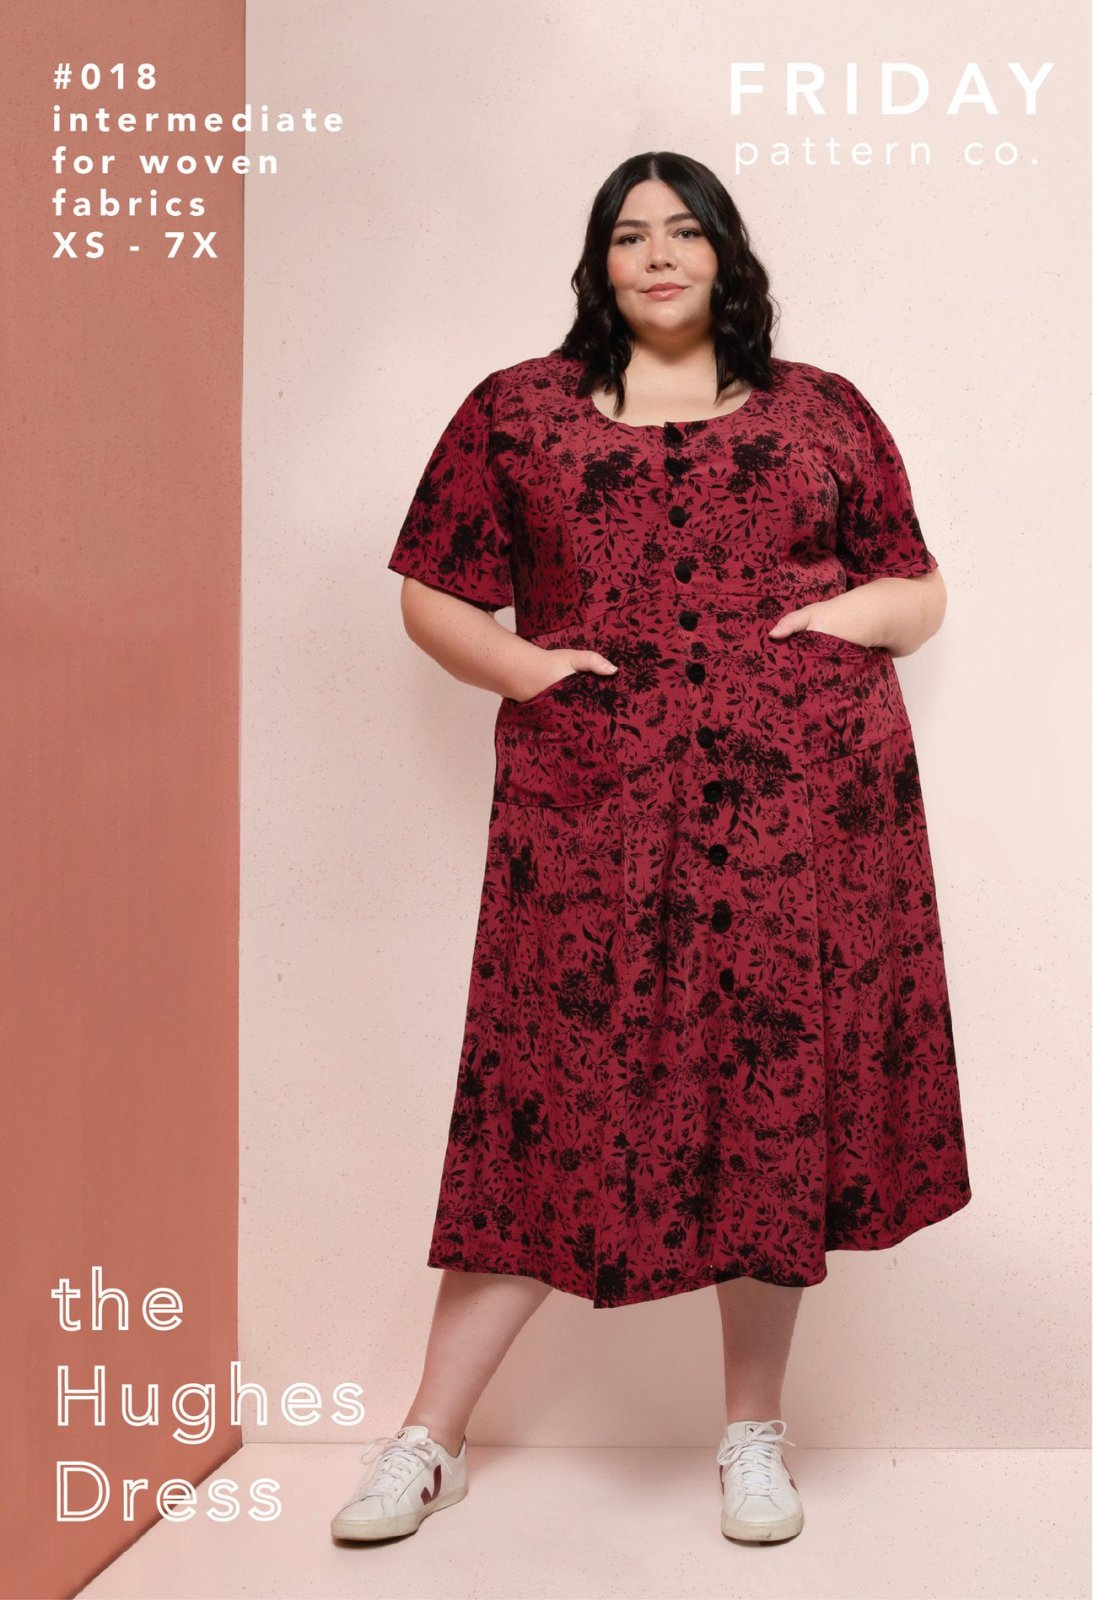 Friday Pattern Co. The Hughes Dress Pattern - NEW! Sizes XS-7X (And Bust Sizes Options)